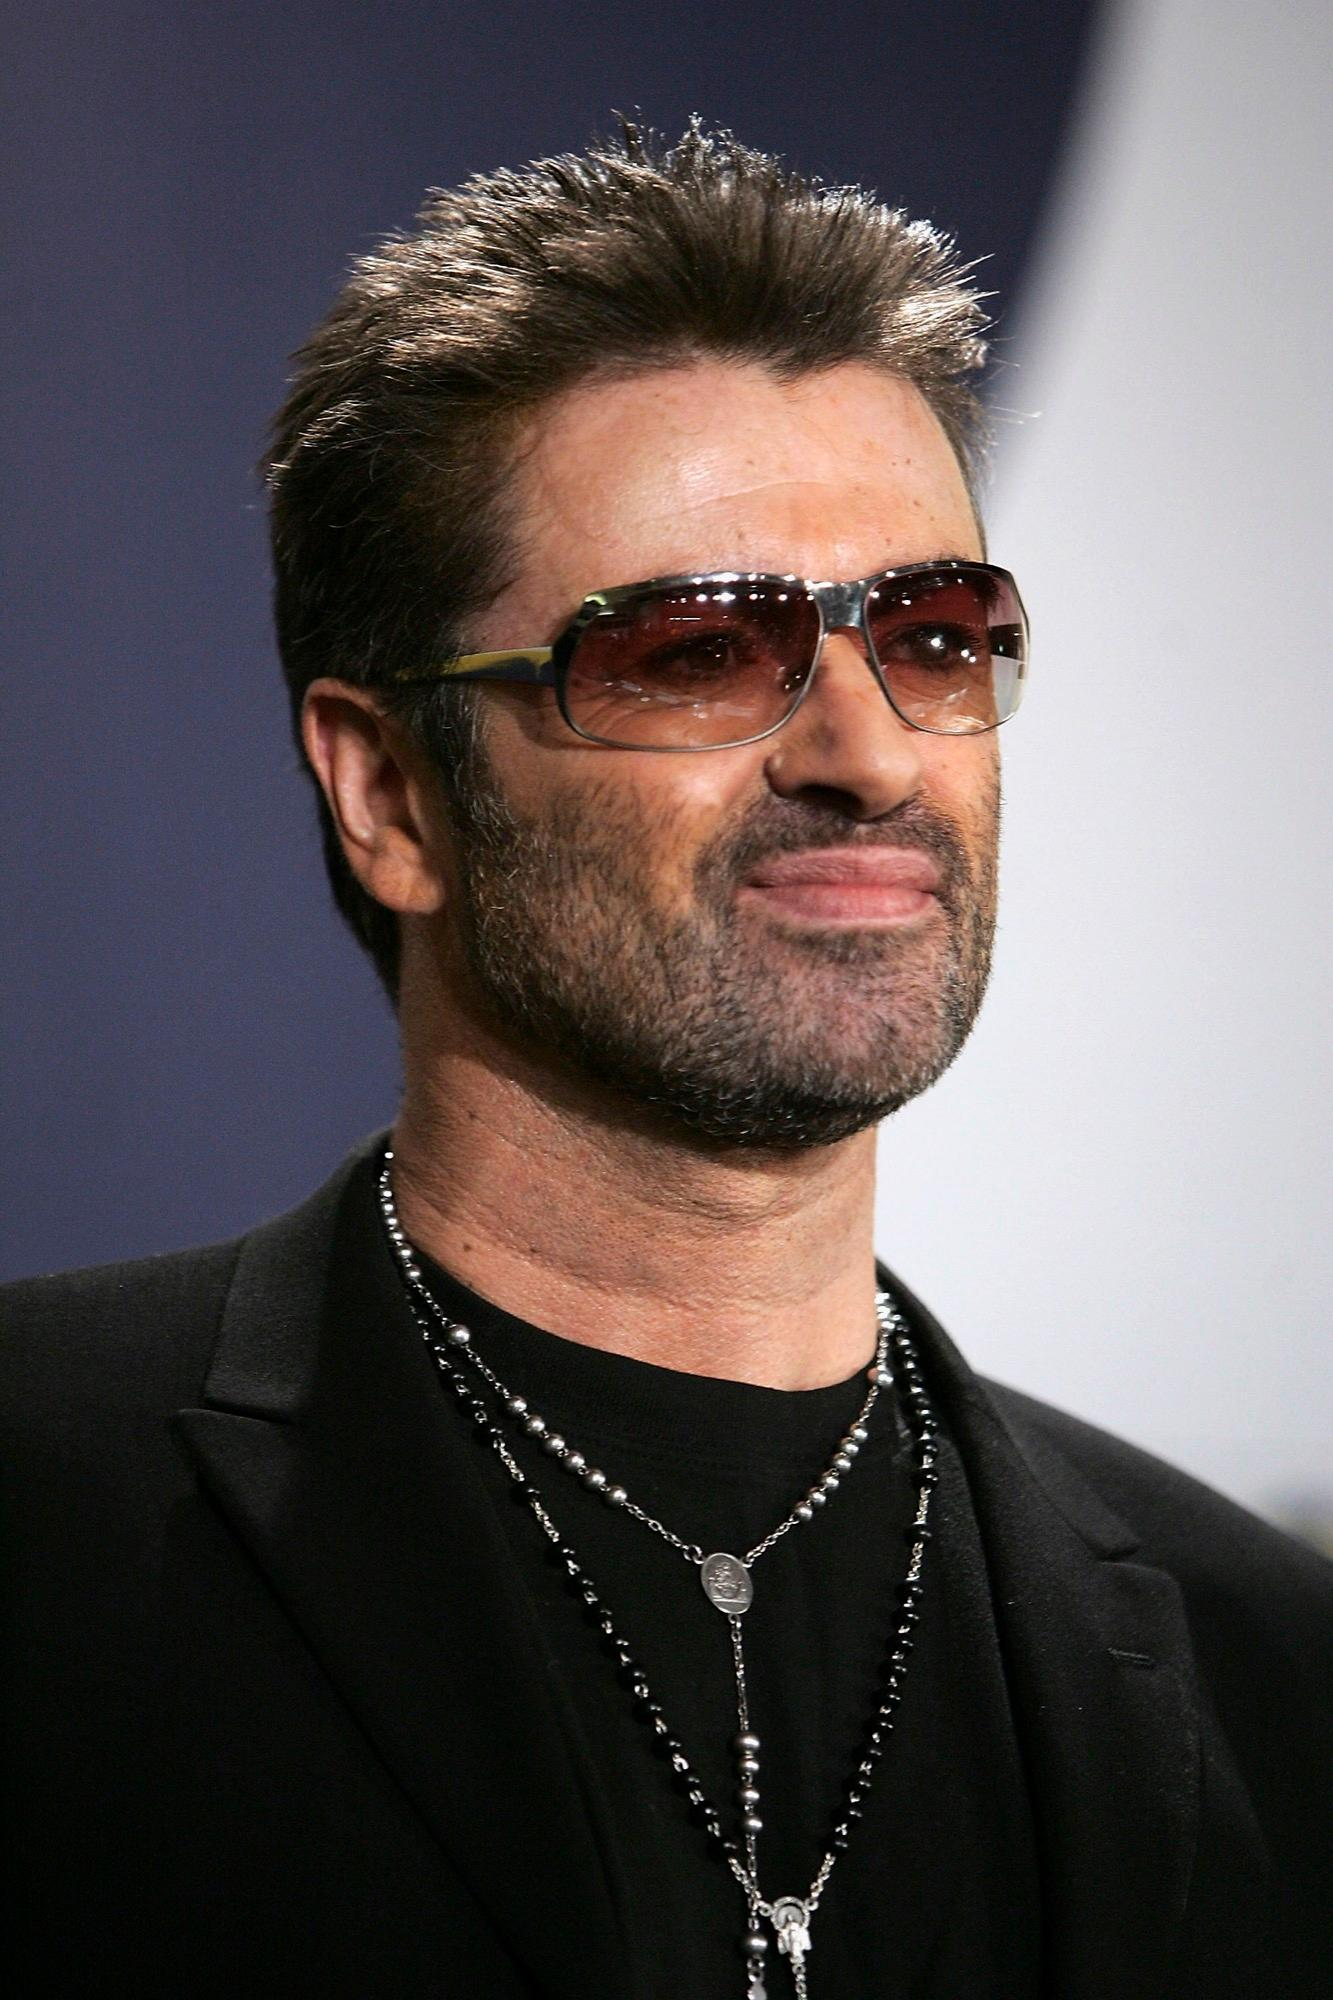 george michael todesursache endg ltig gekl rt. Black Bedroom Furniture Sets. Home Design Ideas